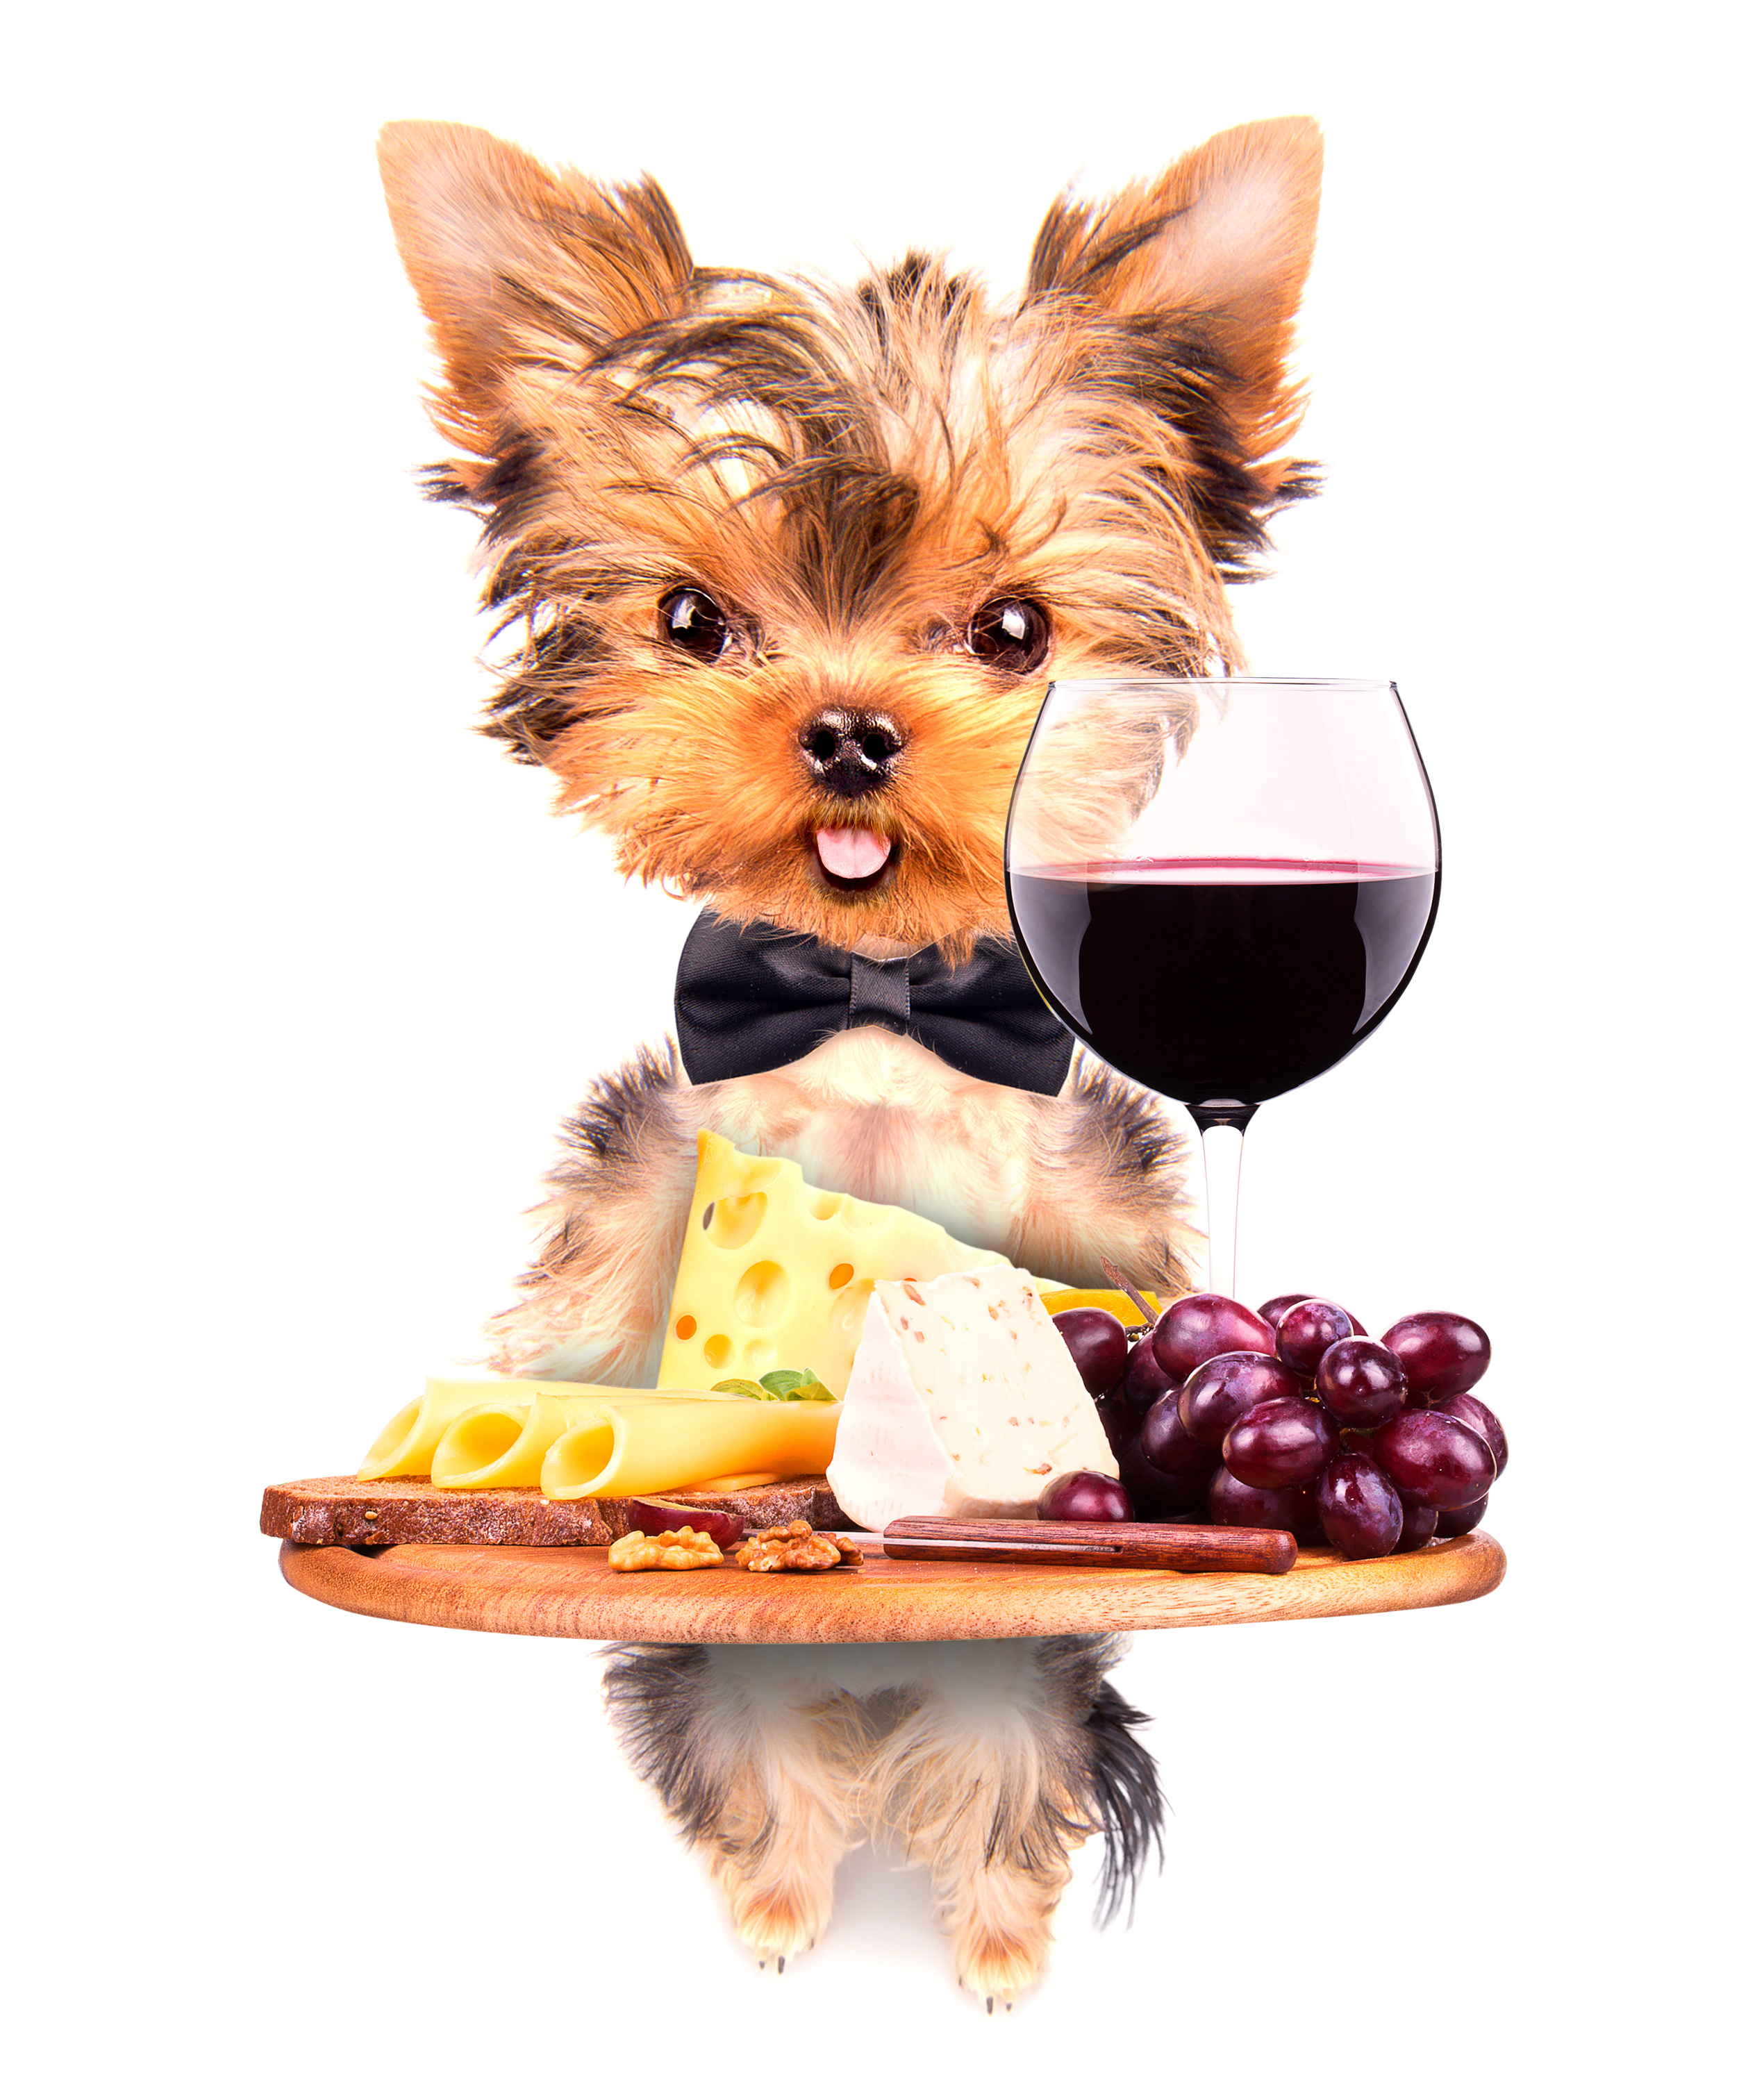 Wine, Kibbles and Bids